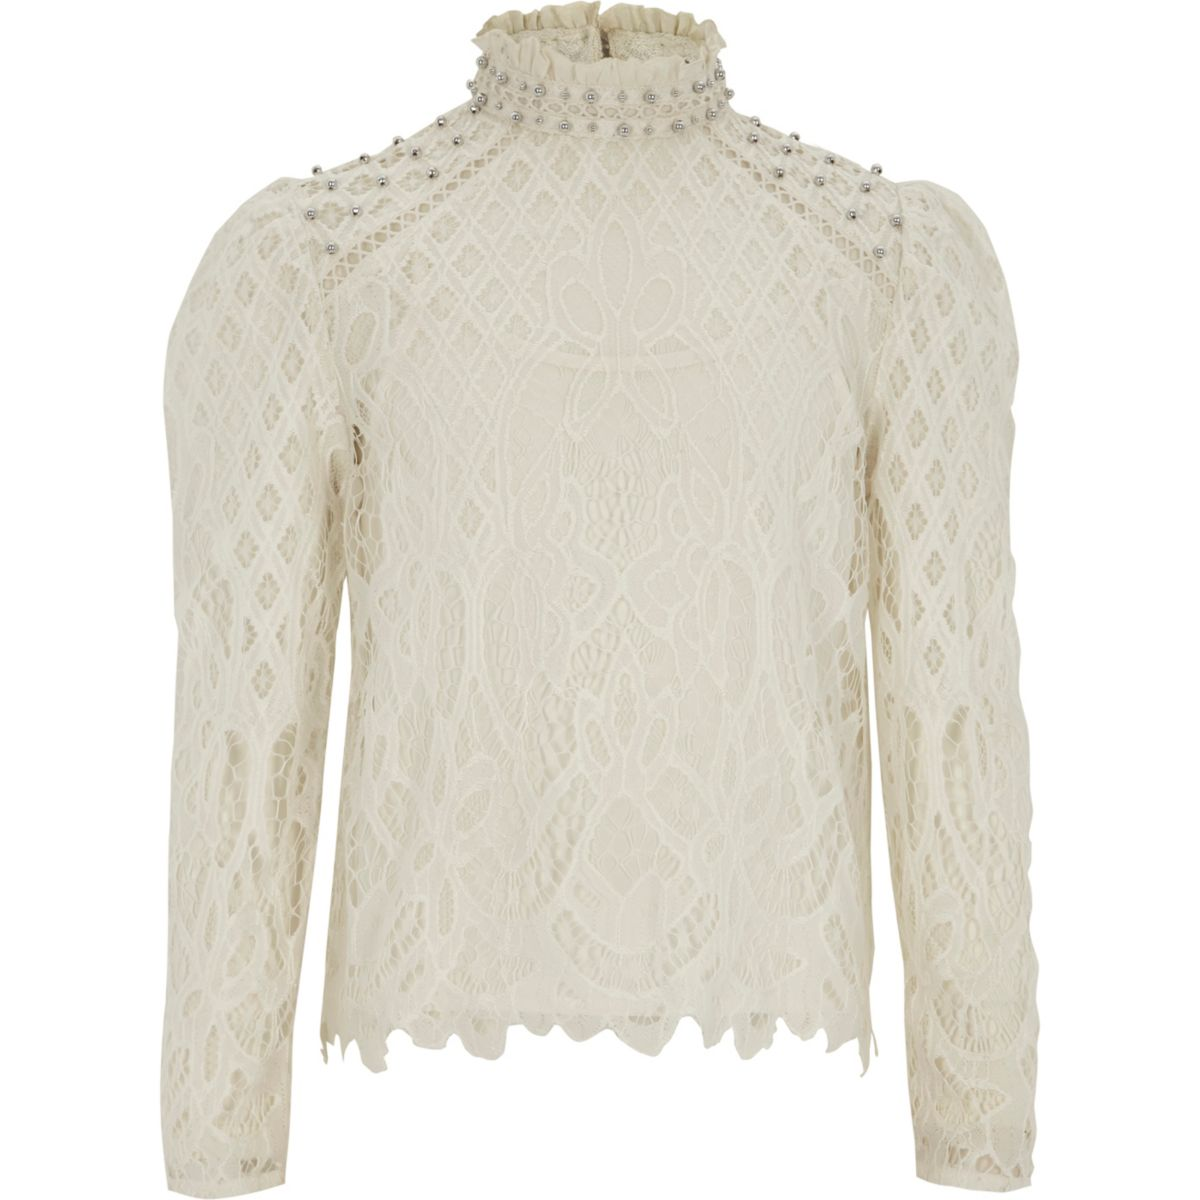 Girls cream lace high neck puff sleeve top